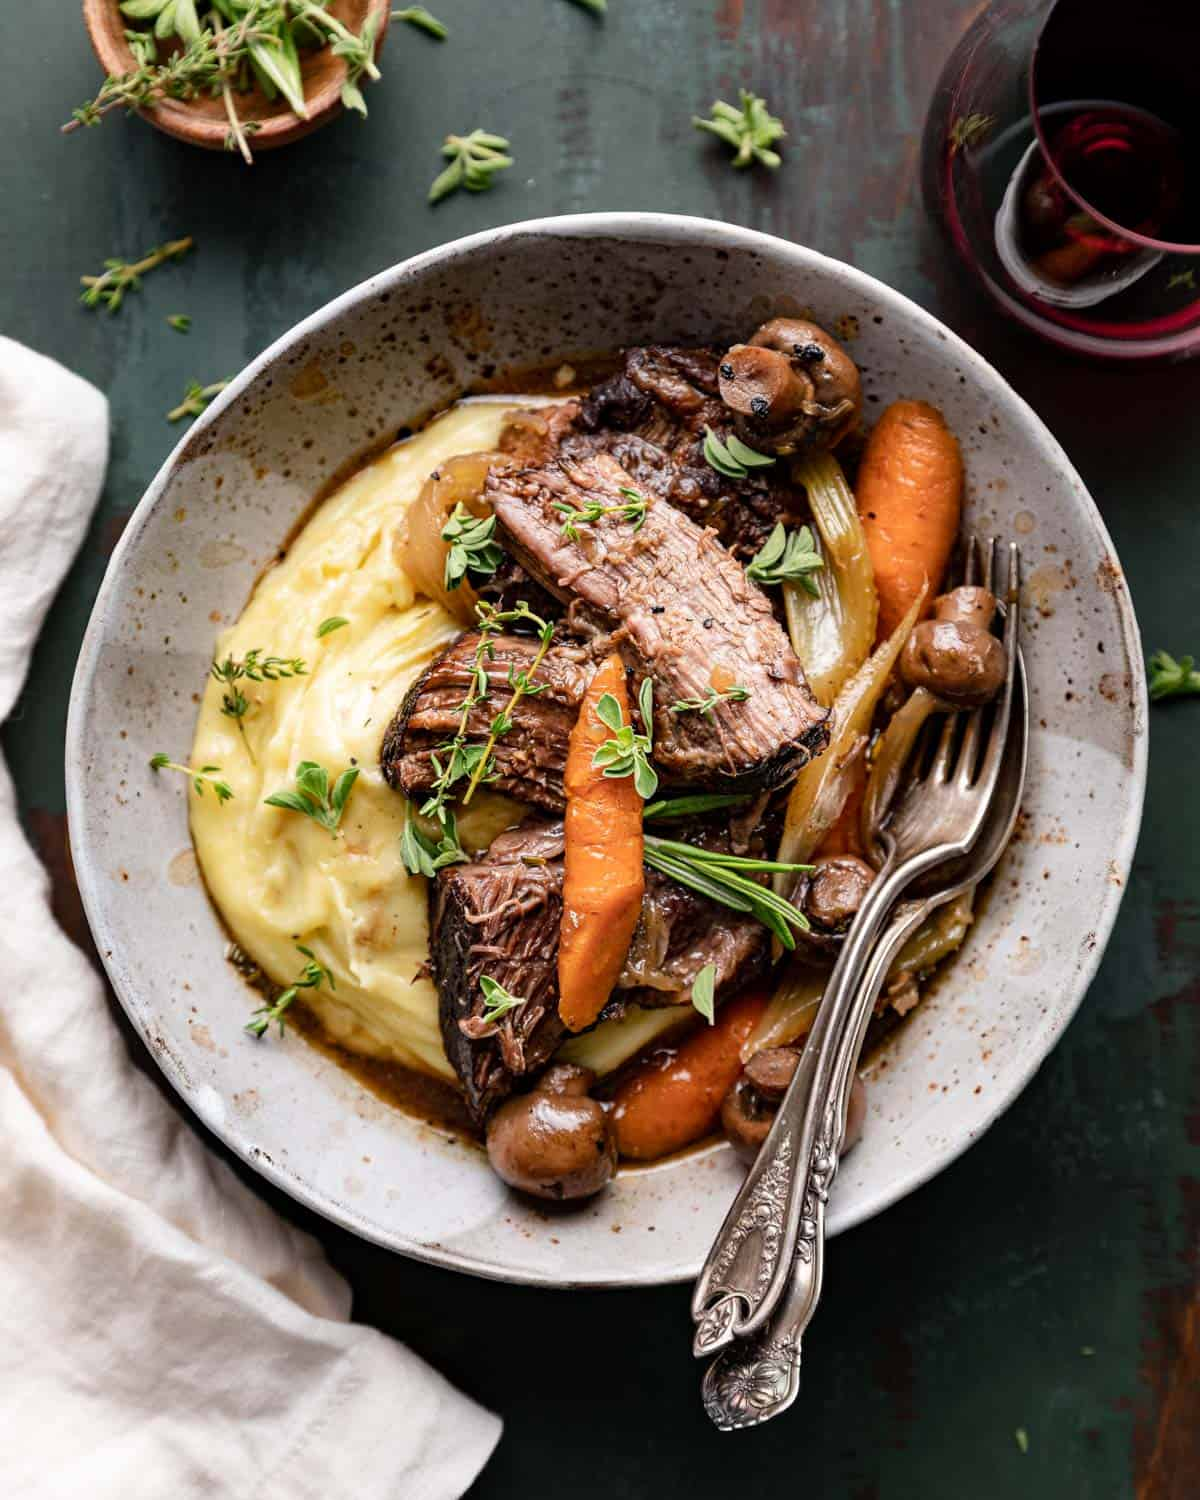 overhead of bowl with mashed potatoes, roast, and vegetables